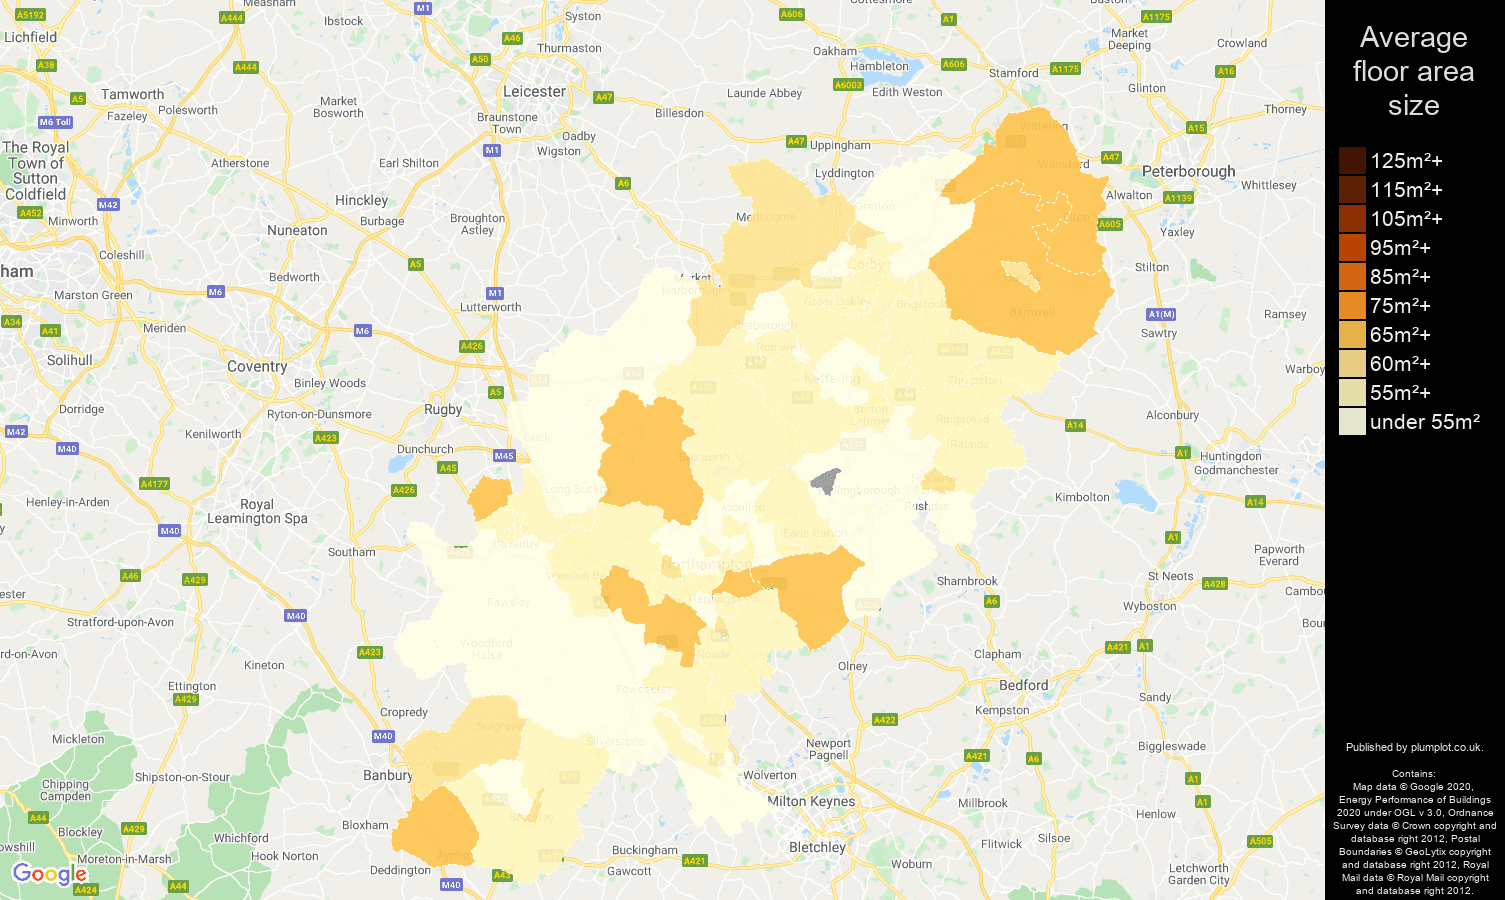 Northamptonshire map of average floor area size of flats